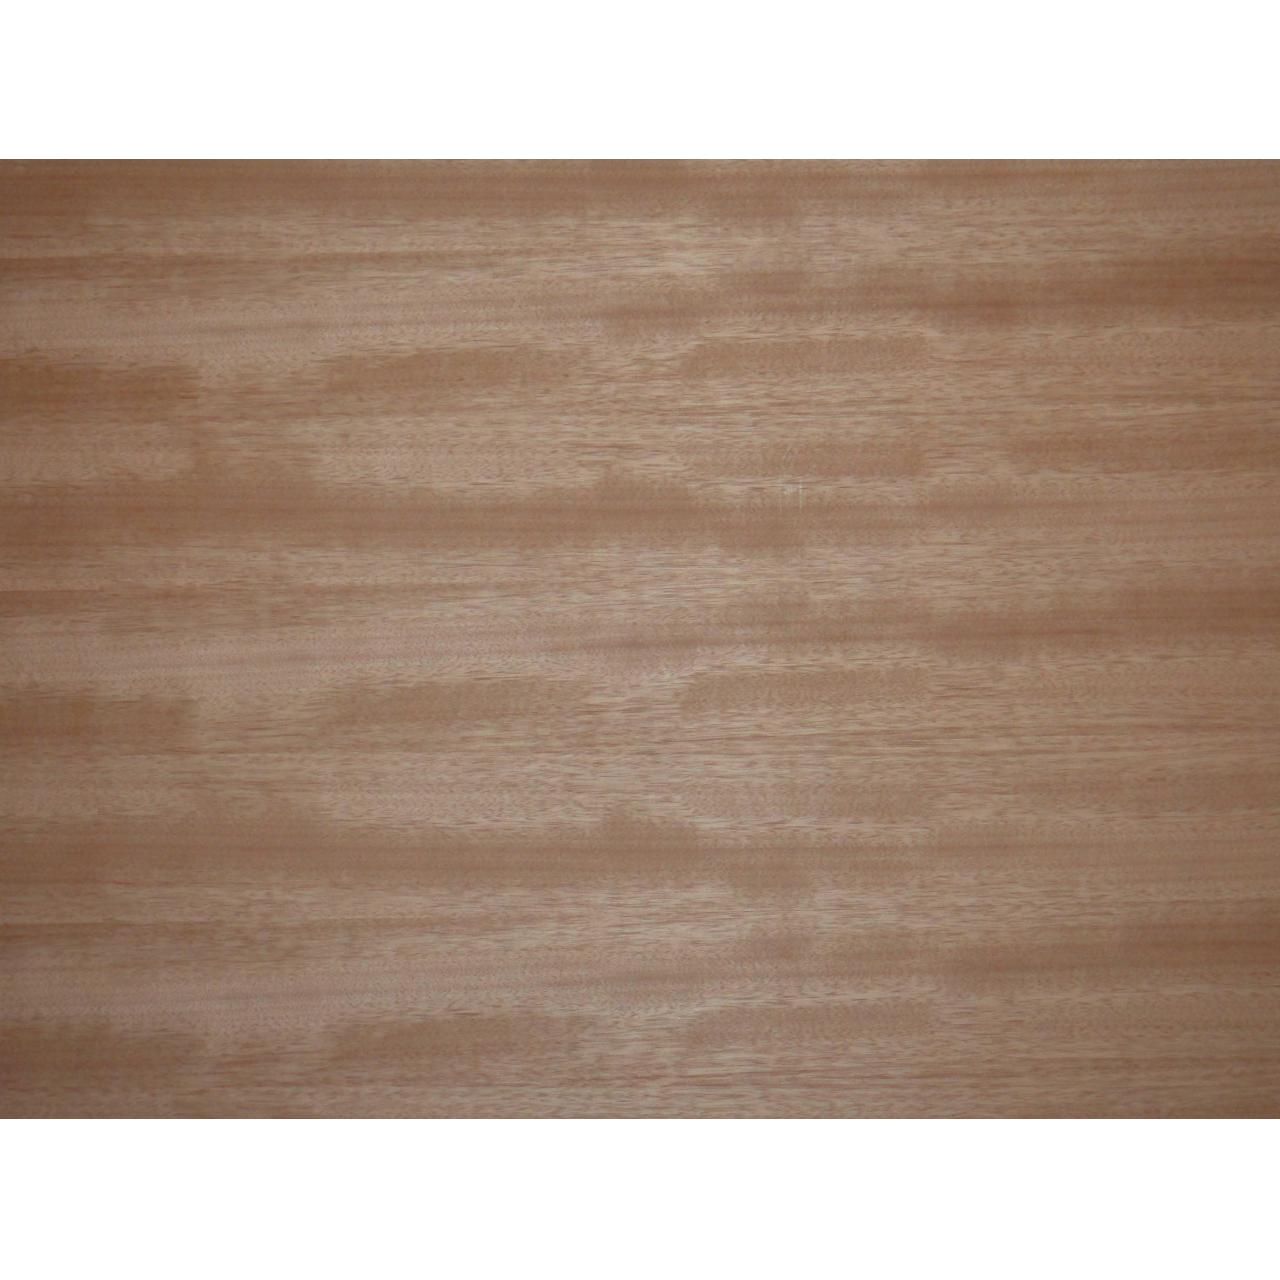 Fancy plywood Product  Sliced straight peach core